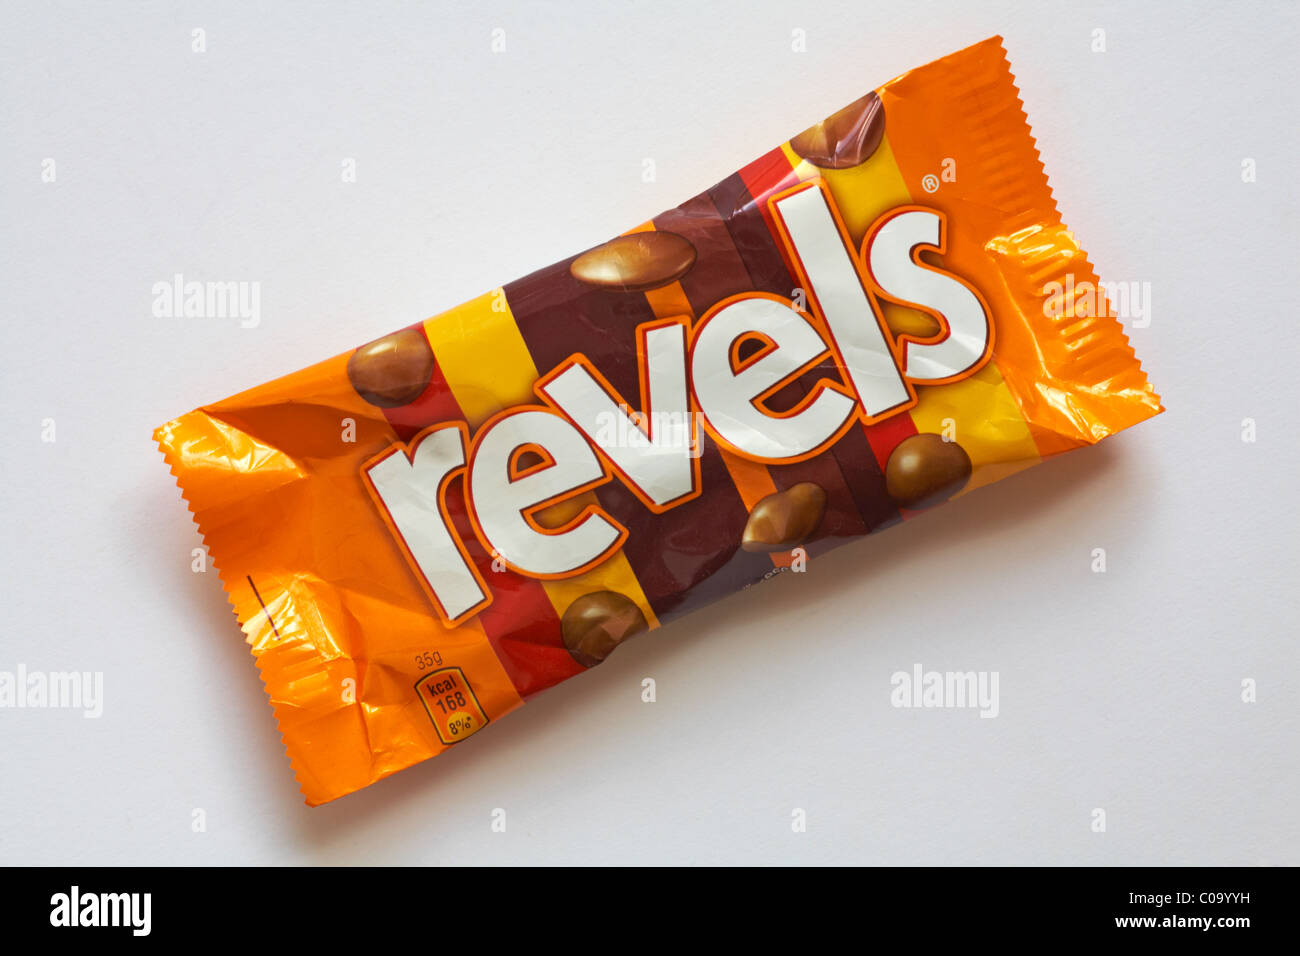 packet of Revels chocolates isolated on white background - Stock Image